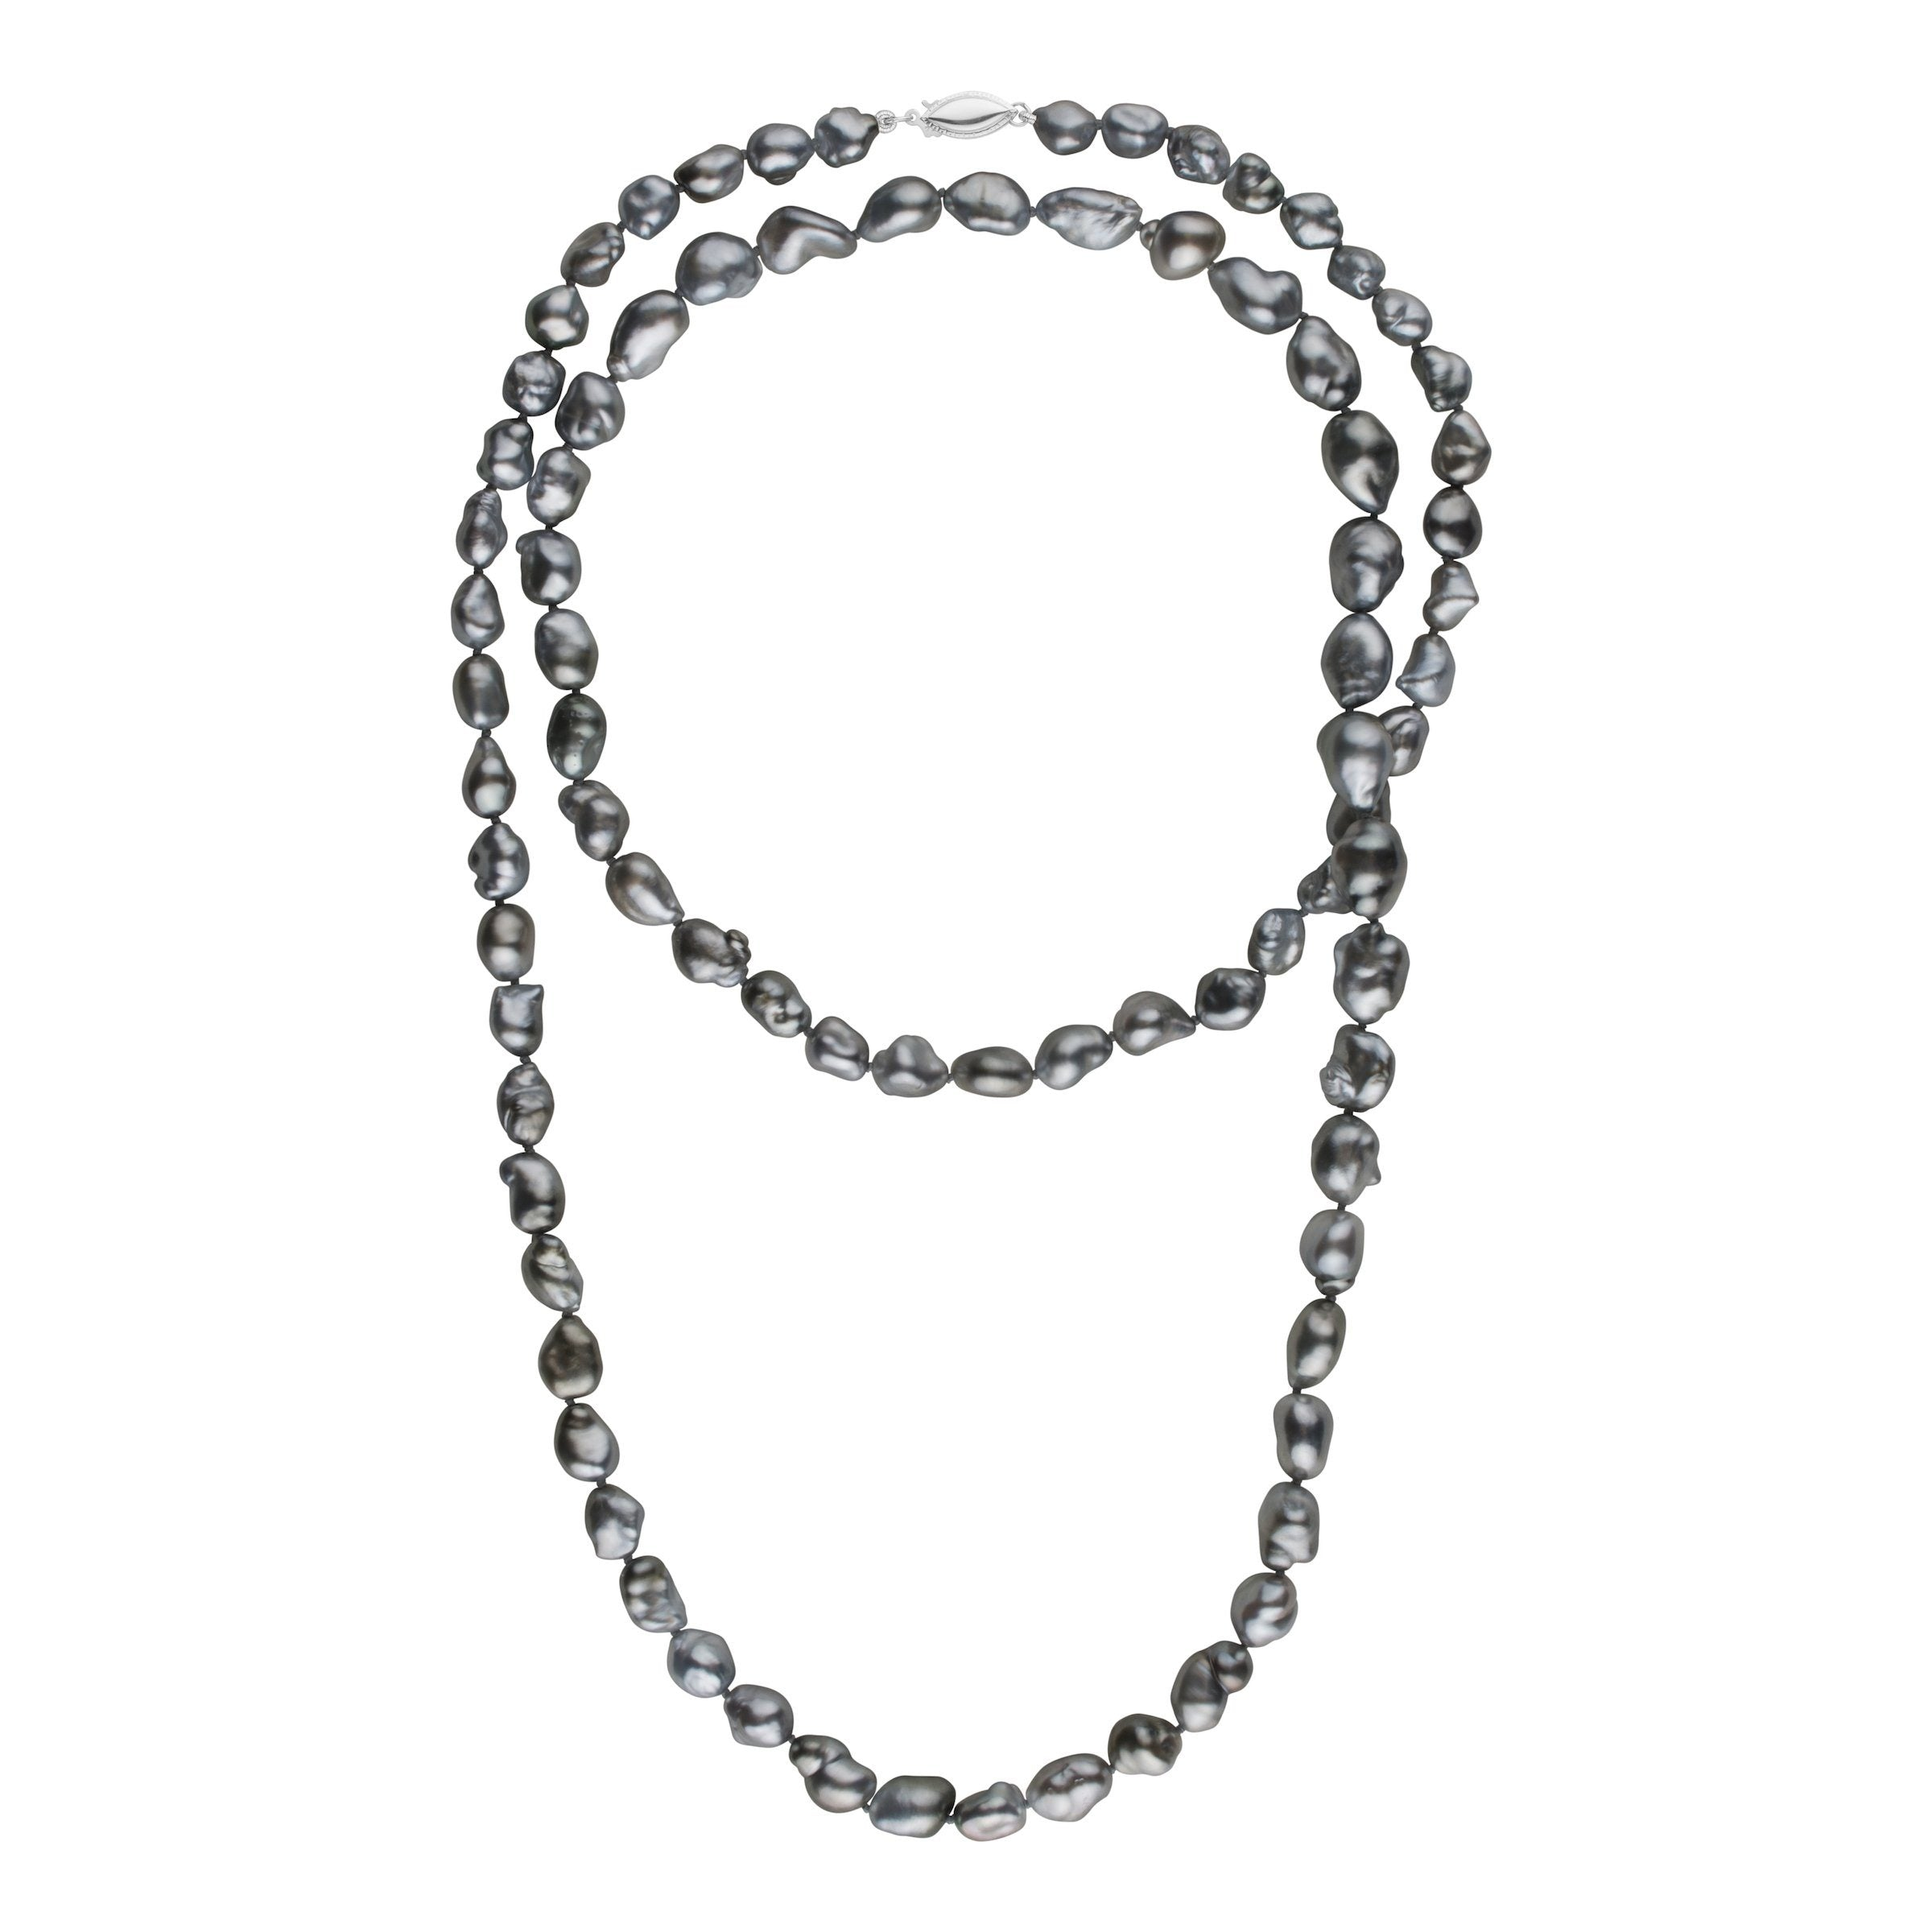 7.5-9.5 mm 35 Inch Dark Silver Keshi Tahitian Pearl Necklace